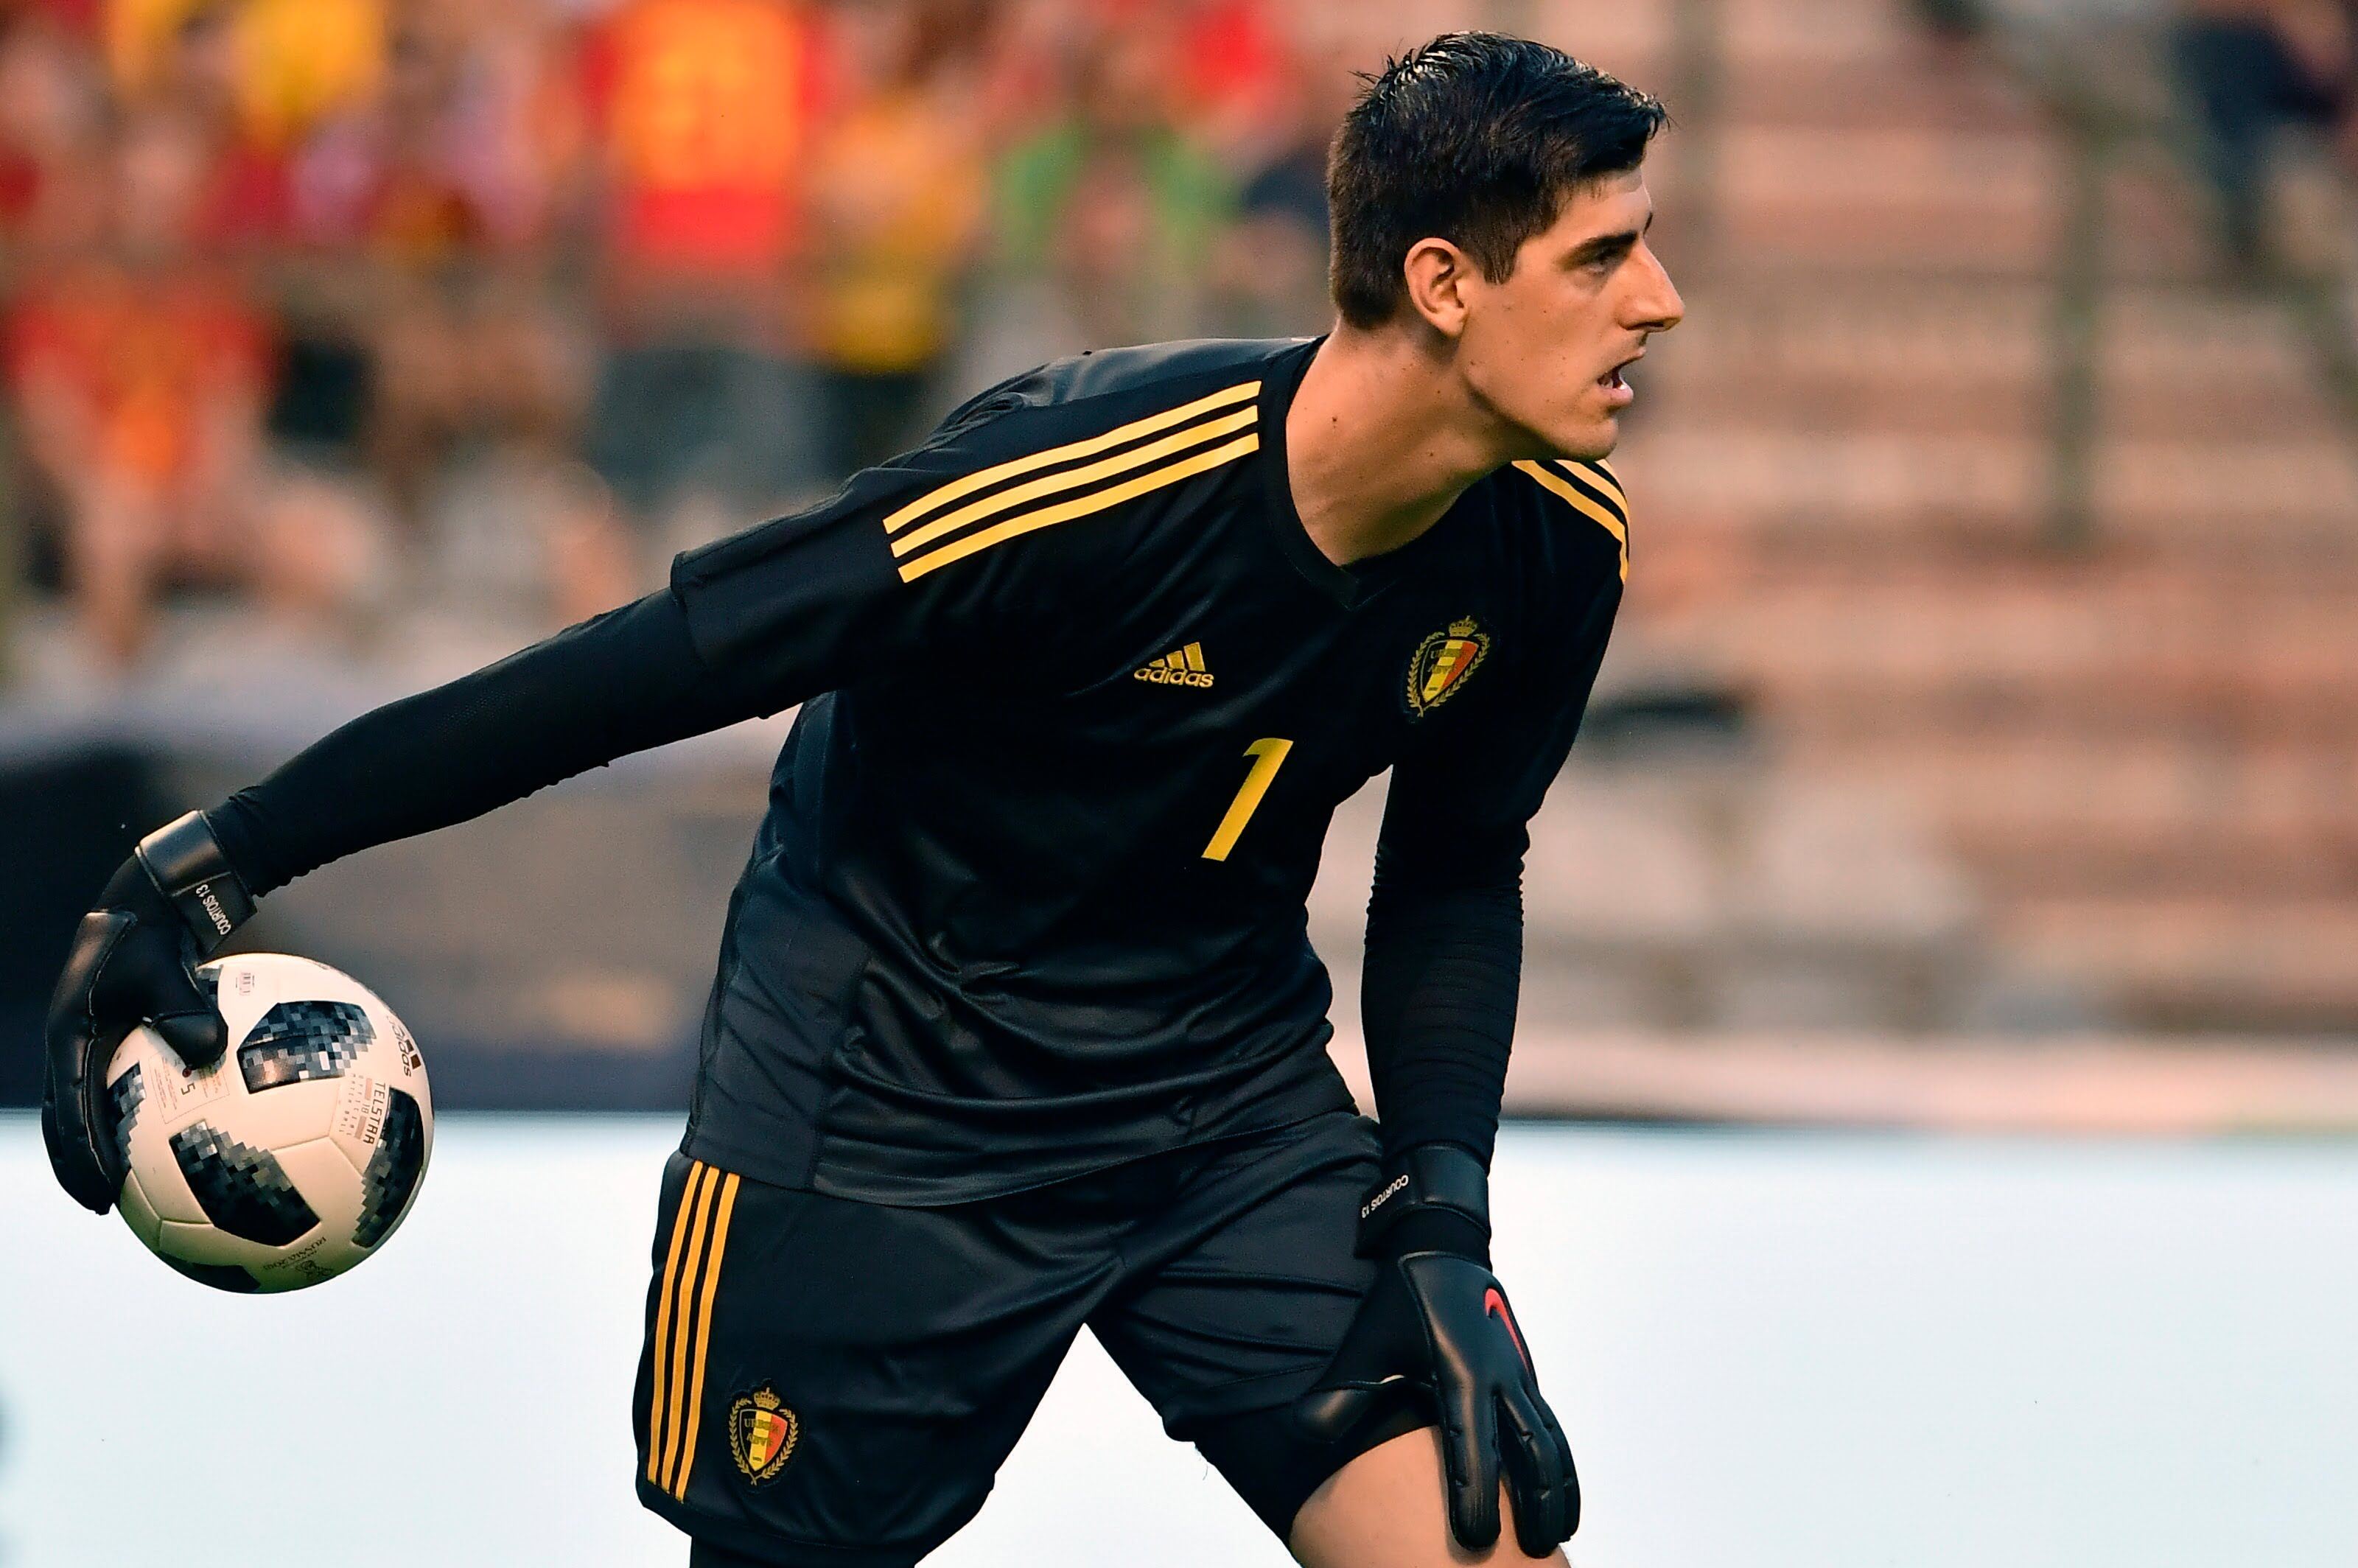 June 6, 2018 - Brussels, BELGIUM - Belgium's goalkeeper Thibaut Courtois pictured in action during a friendly game between Belgium national team, The Red Devils and Egyptian national soccer team, Wednesday 06 June 2018, in Brussels. Both teams prepare the upcoming FIFA World Cup 2018 in Russia...BELGA PHOTO DIRK WAEM (Credit Image: © Dirk Waem/Belga via ZUMA Press) PILKA NOZNA MECZ TOWARZYSKI BELGIA - EGIPT FOT. ZUMA/NEWSPIX.PL POLAND ONLY! --- Newspix.pl *** Local Caption *** www.newspix.pl mail us: info@newspix.pl call us: 0048 022 23 22 222 --- Polish Picture Agency by Ringier Axel Springer Poland